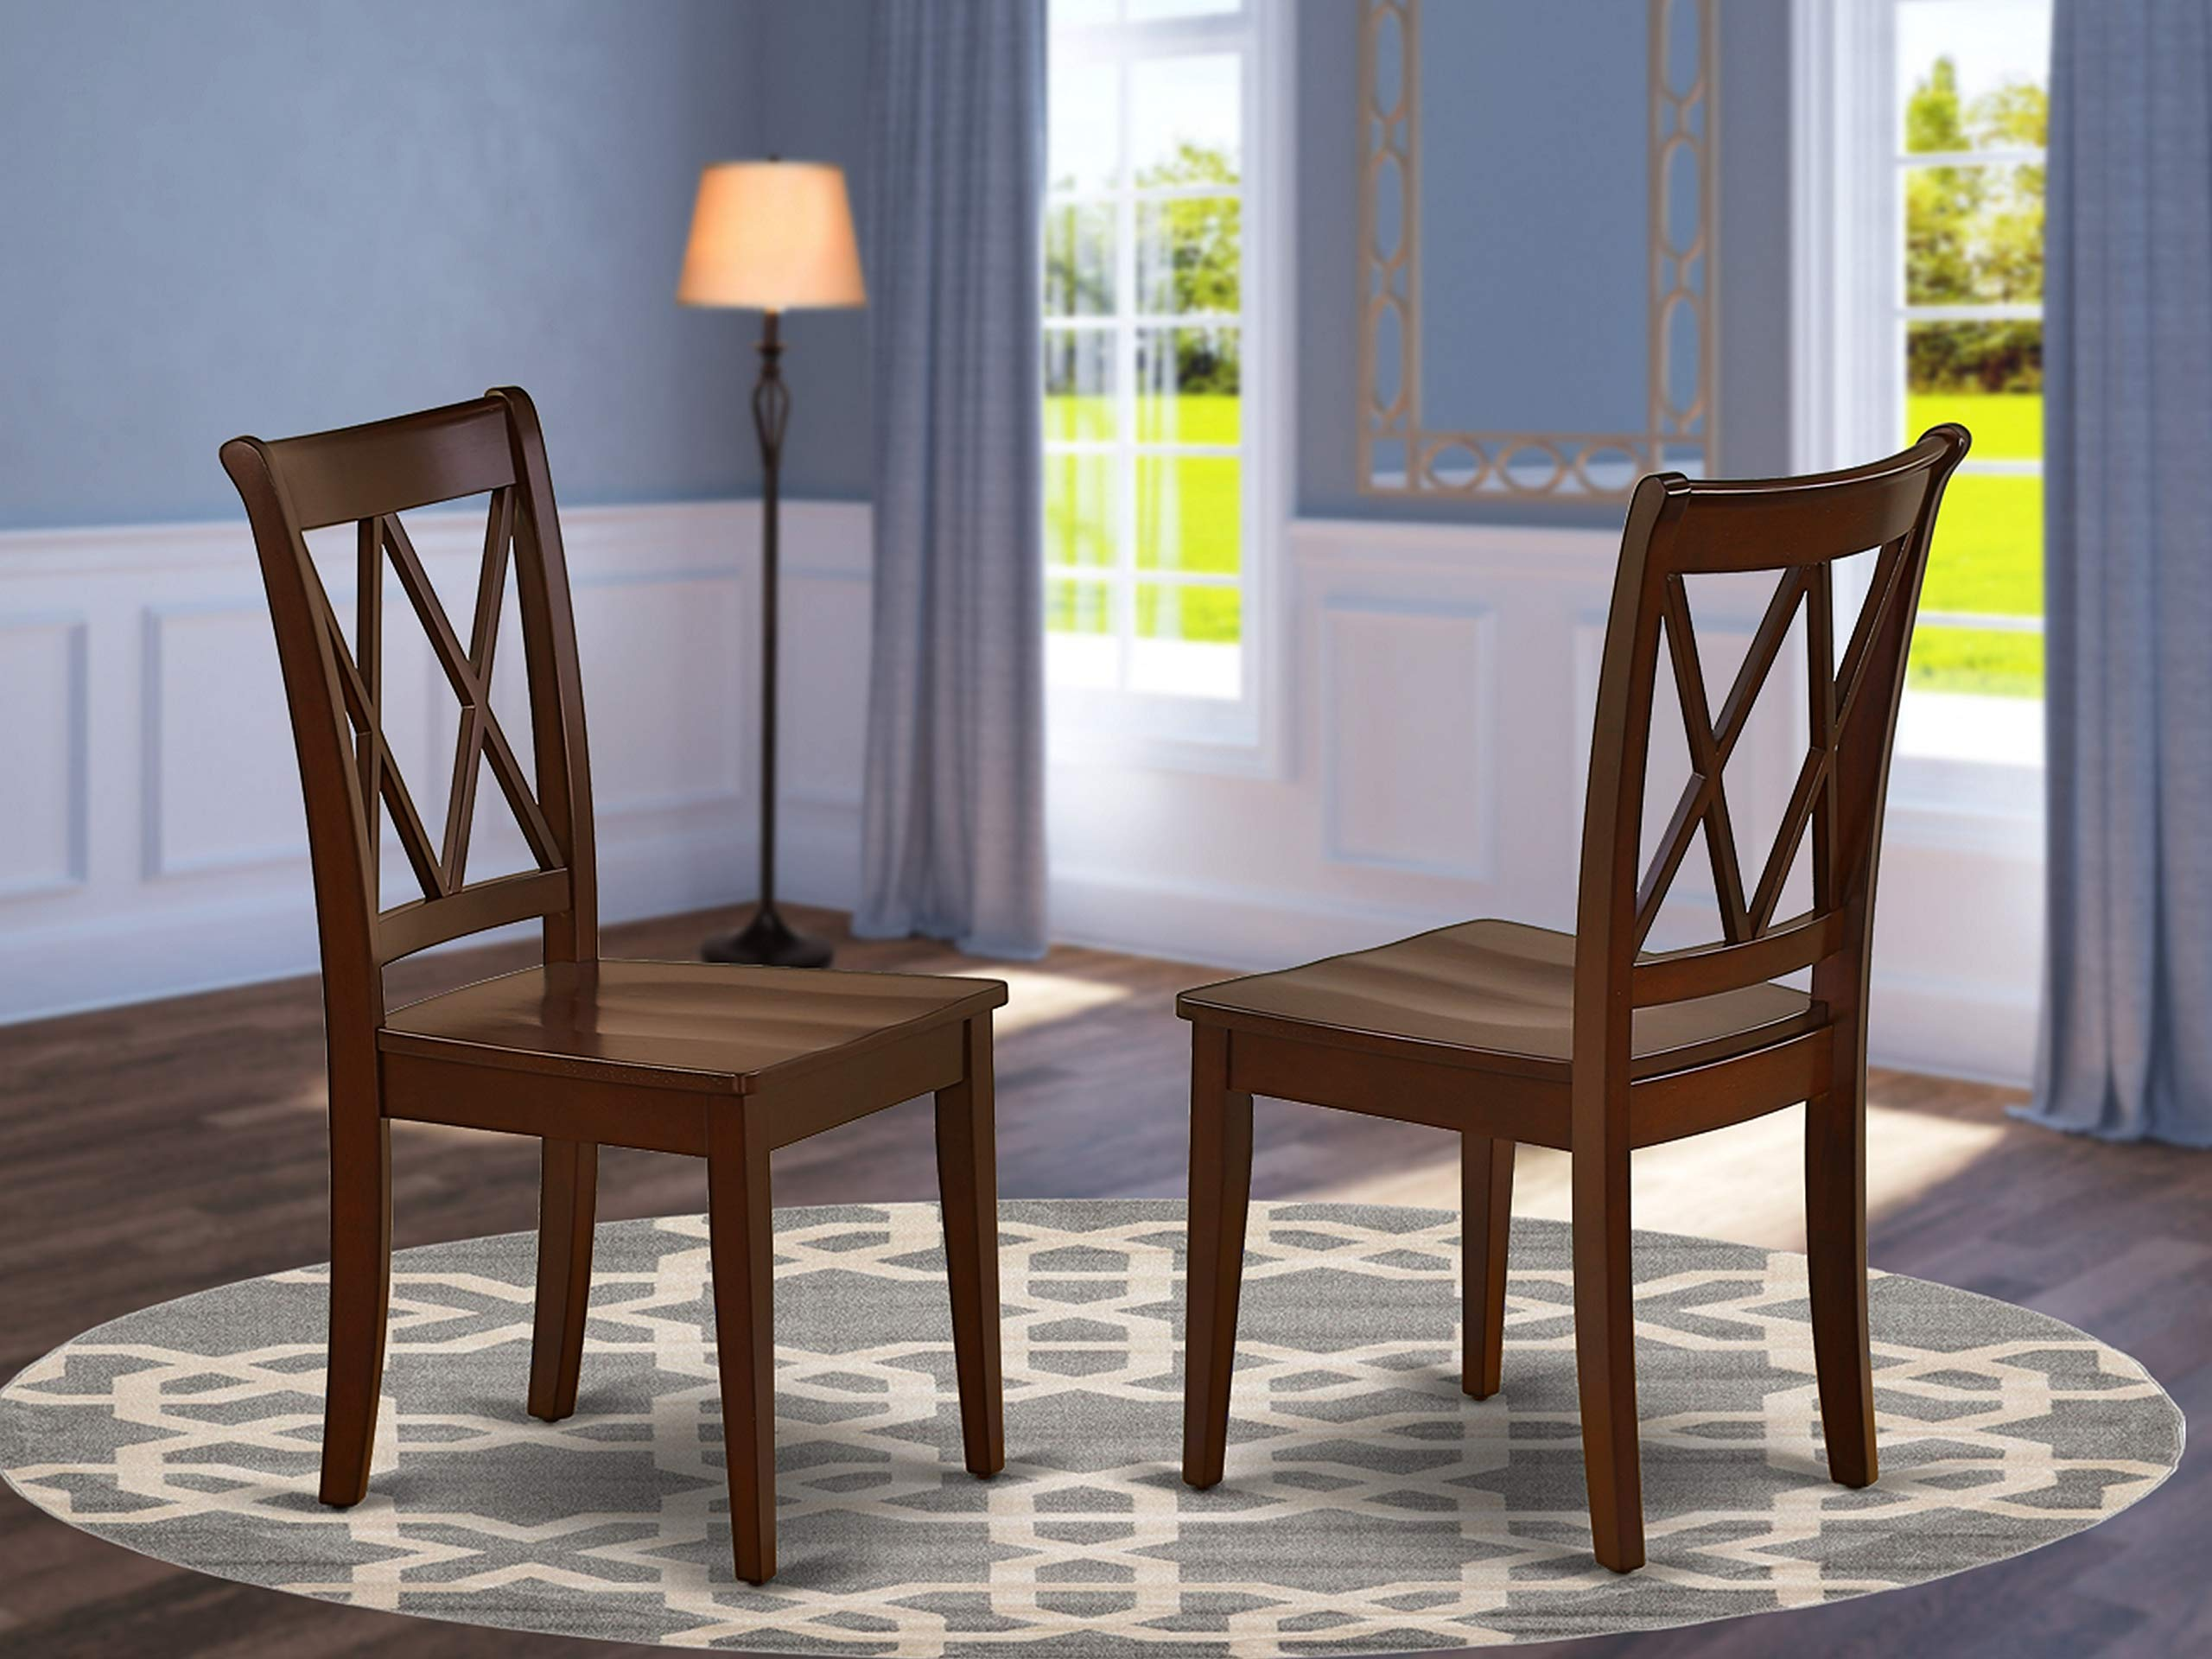 East West Furniture CLC-MAH-W Clarksville Formal Double X-Back Chairs in Mahoganyh Finish (Set of 2), Mahogany by East West Furniture